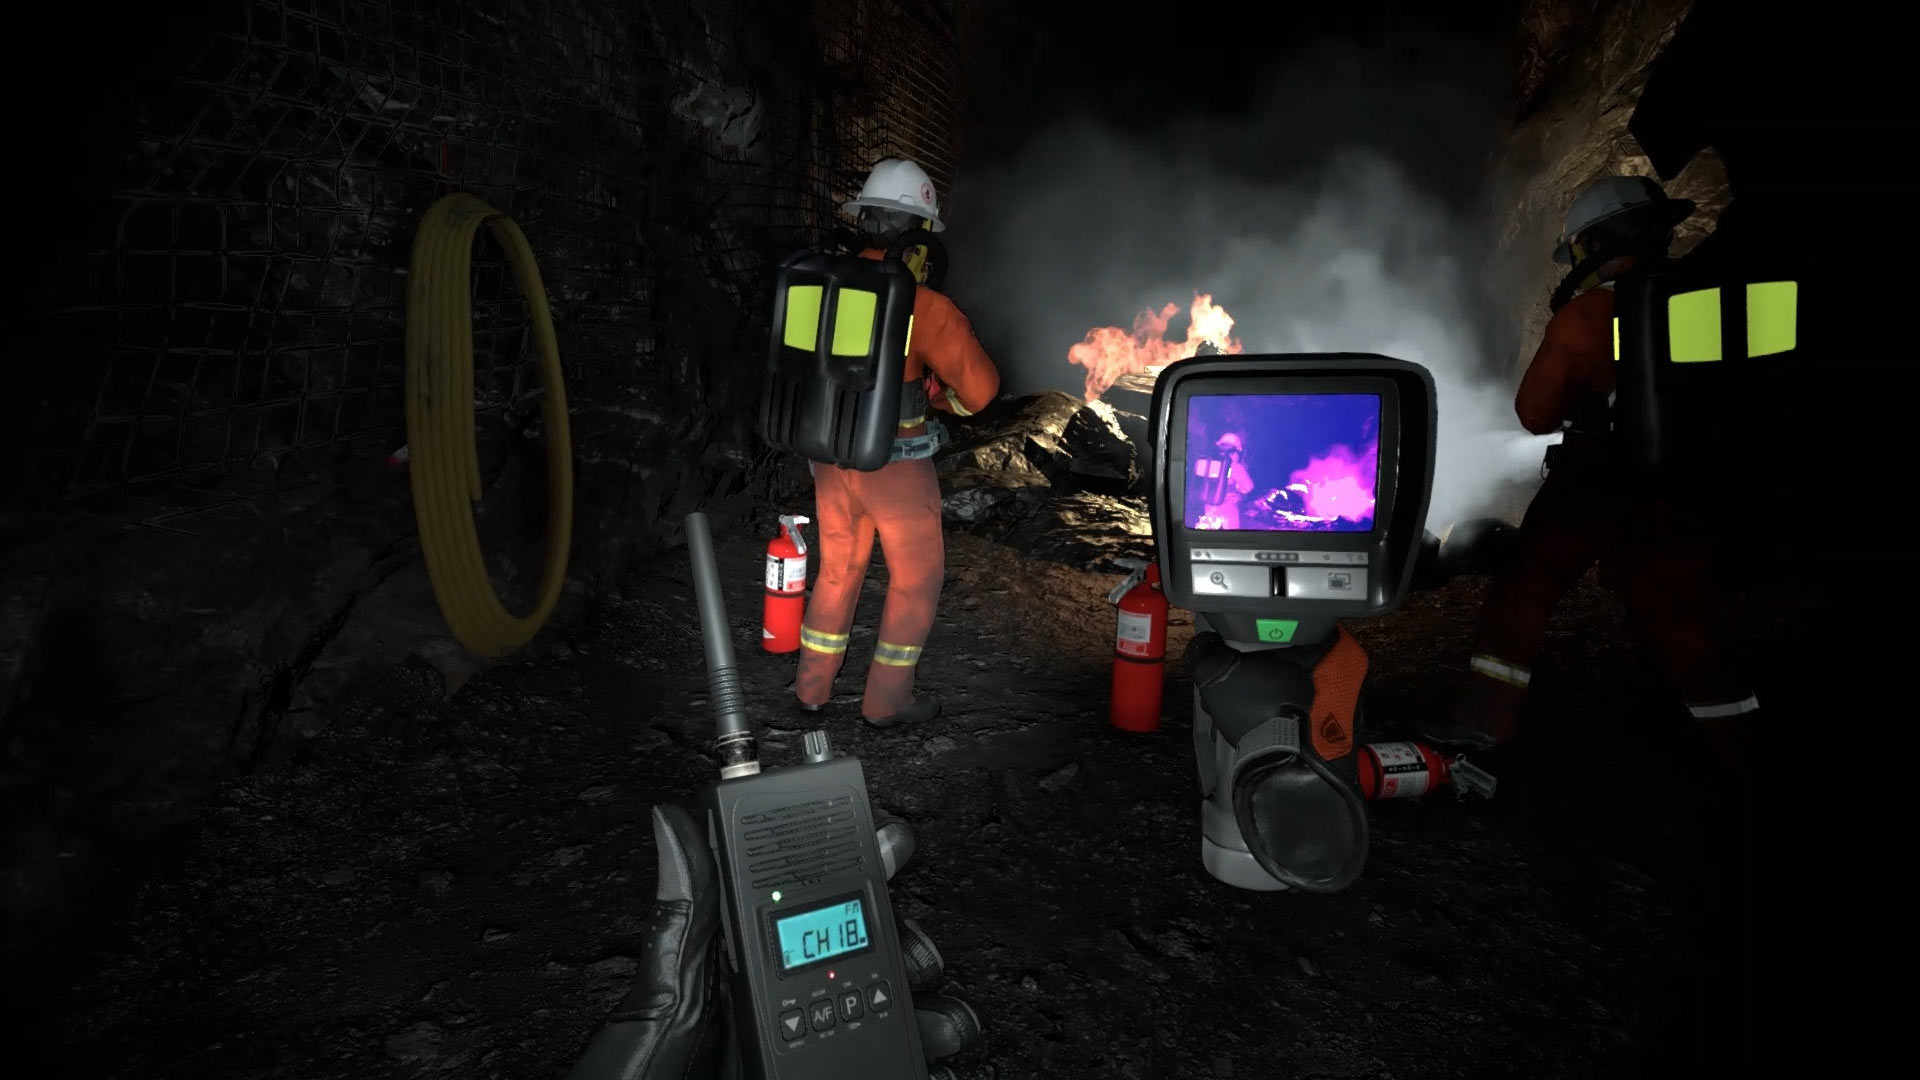 Mine Rescue Team Member - Operating Radio Check - Thermal Camera Inspection (TIC)